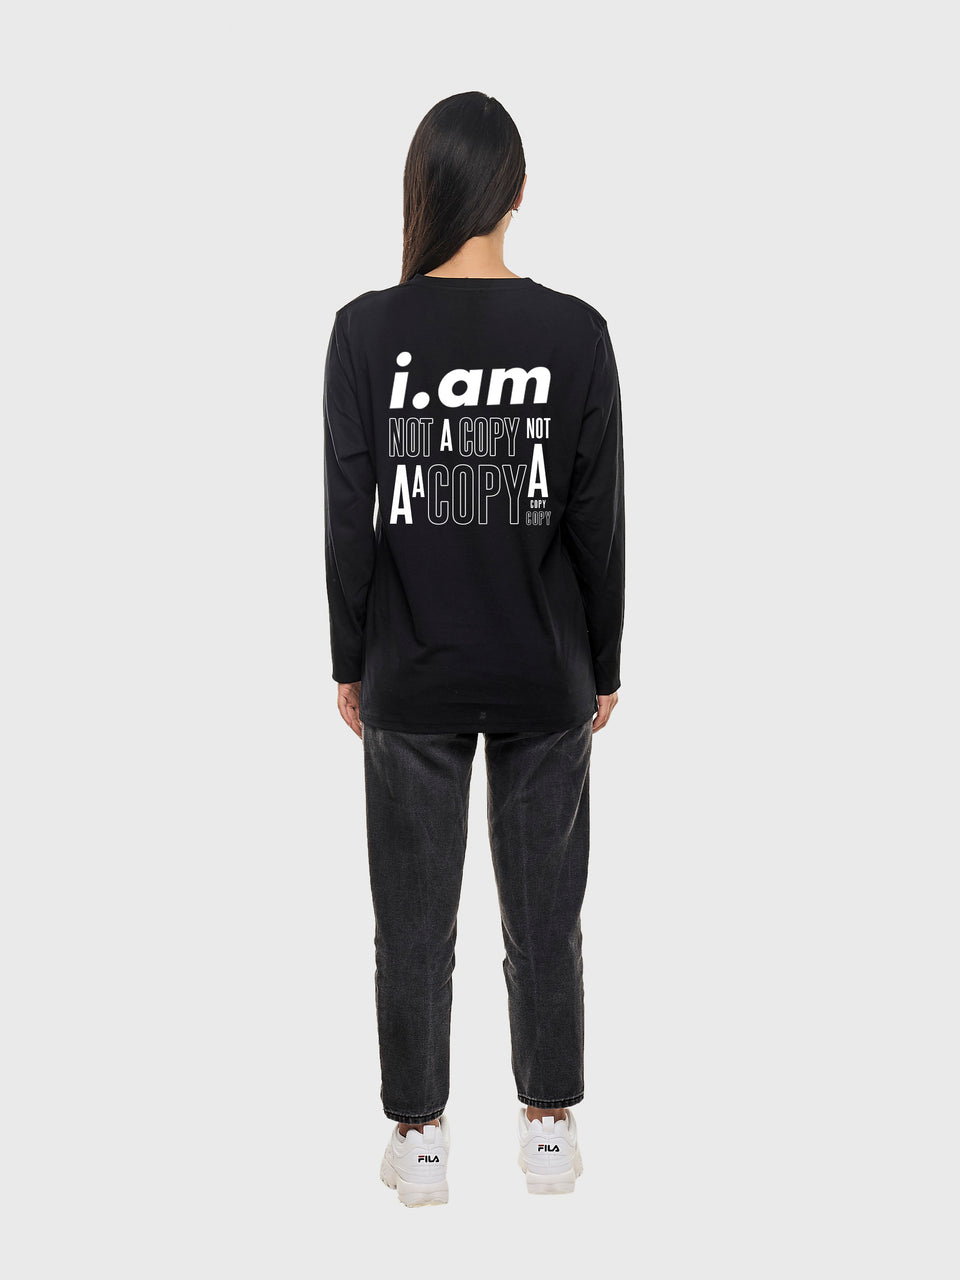 Not a copy - Black - Unisex long sleeve T